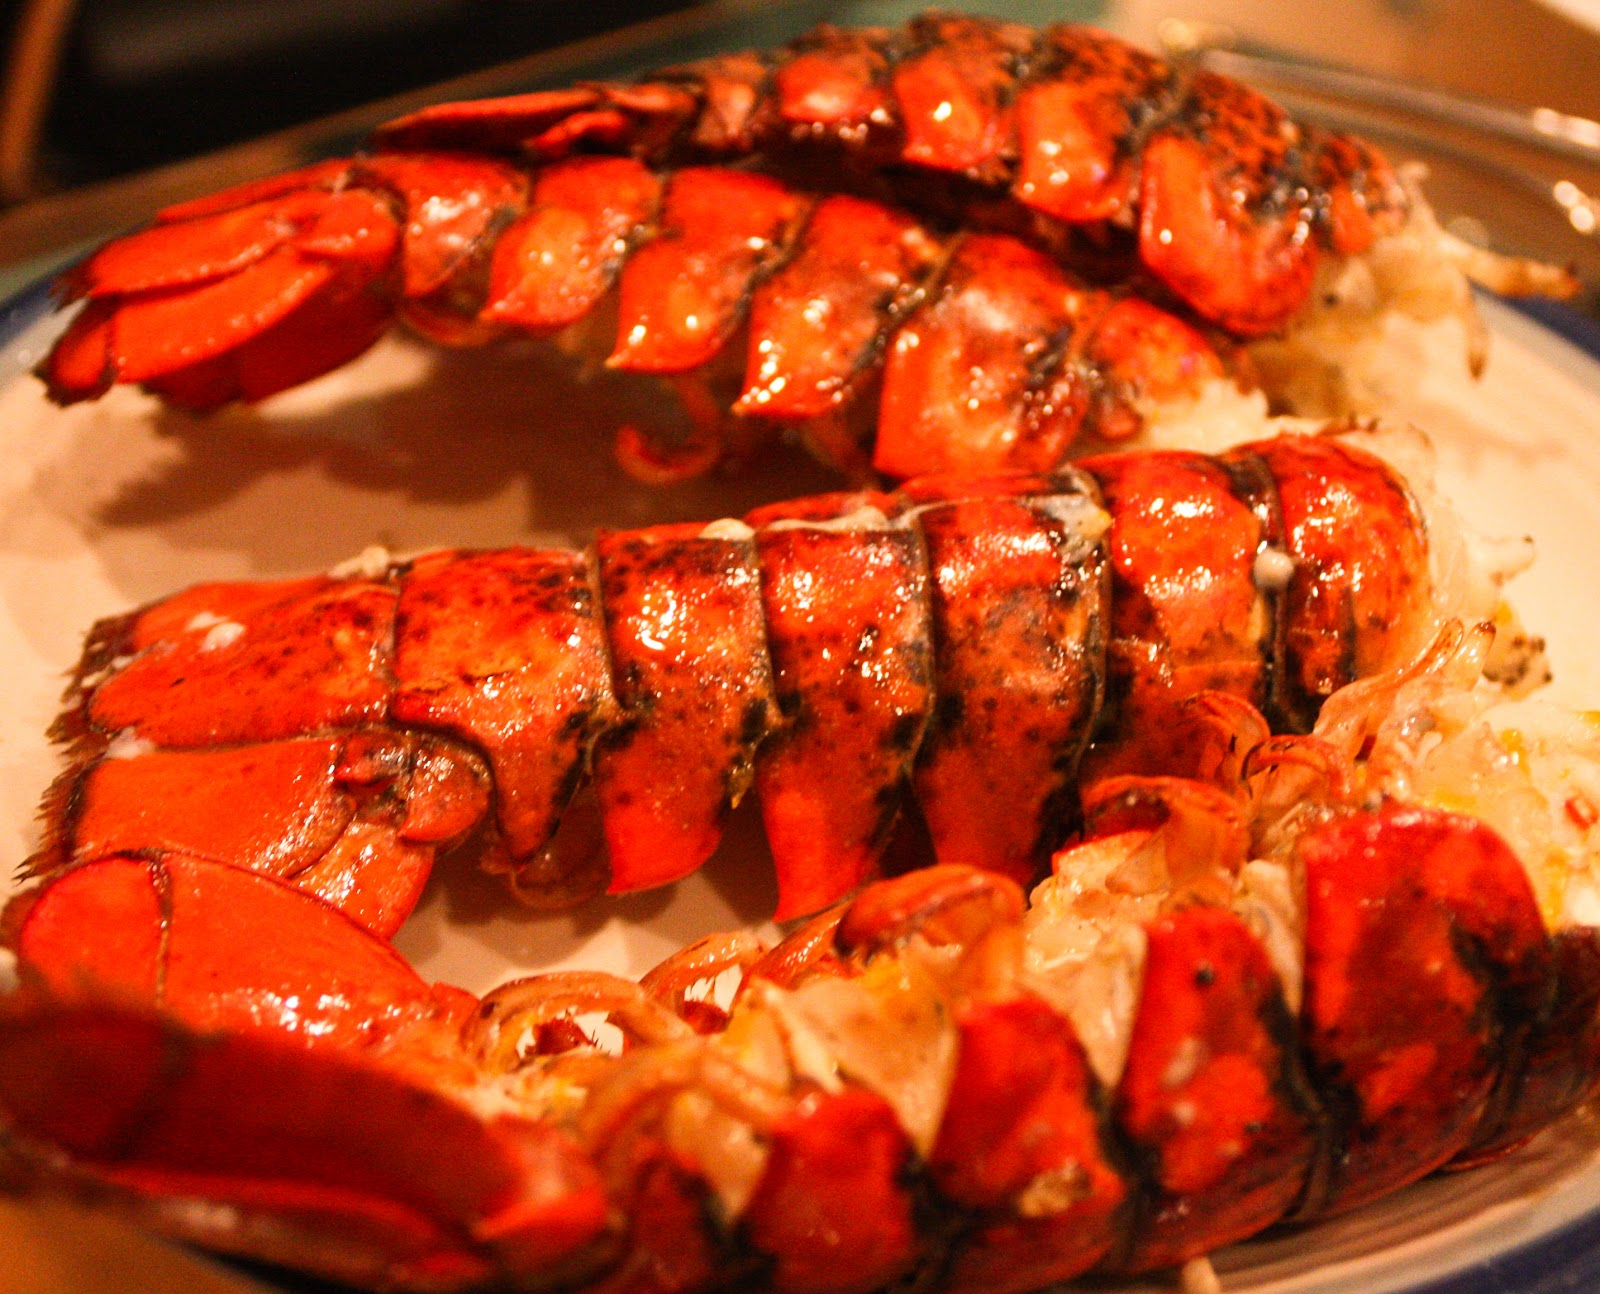 ... Oenophile: Grilled Lobster Tails with Meyer Lemon Vinaigrette